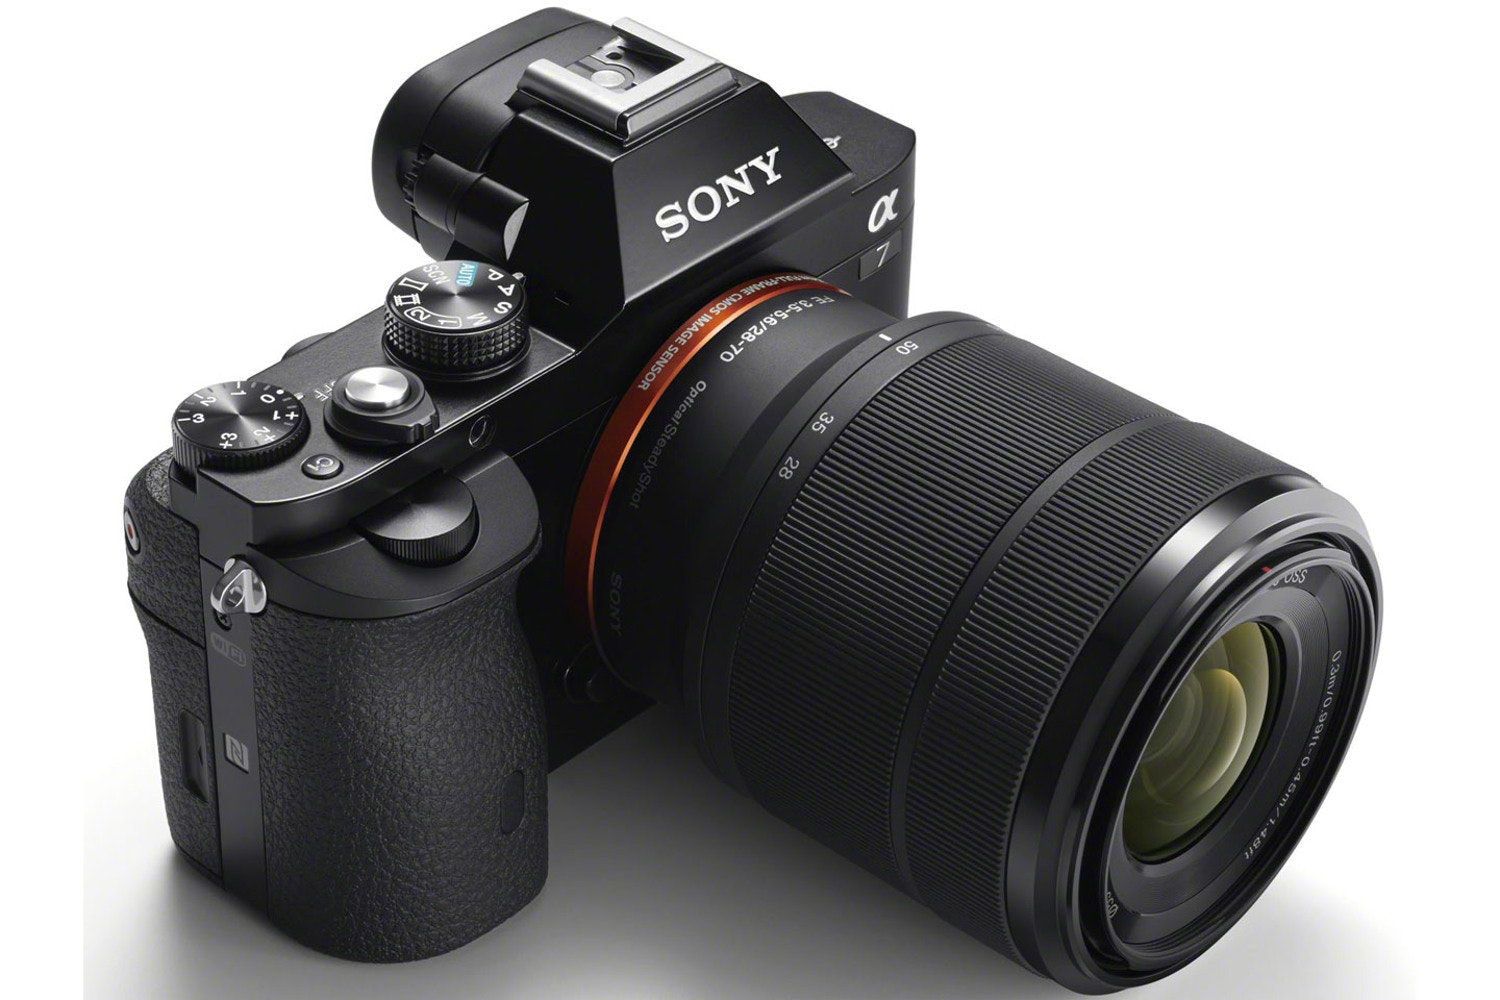 Sony Alpha a7 & 28-70mm Lens